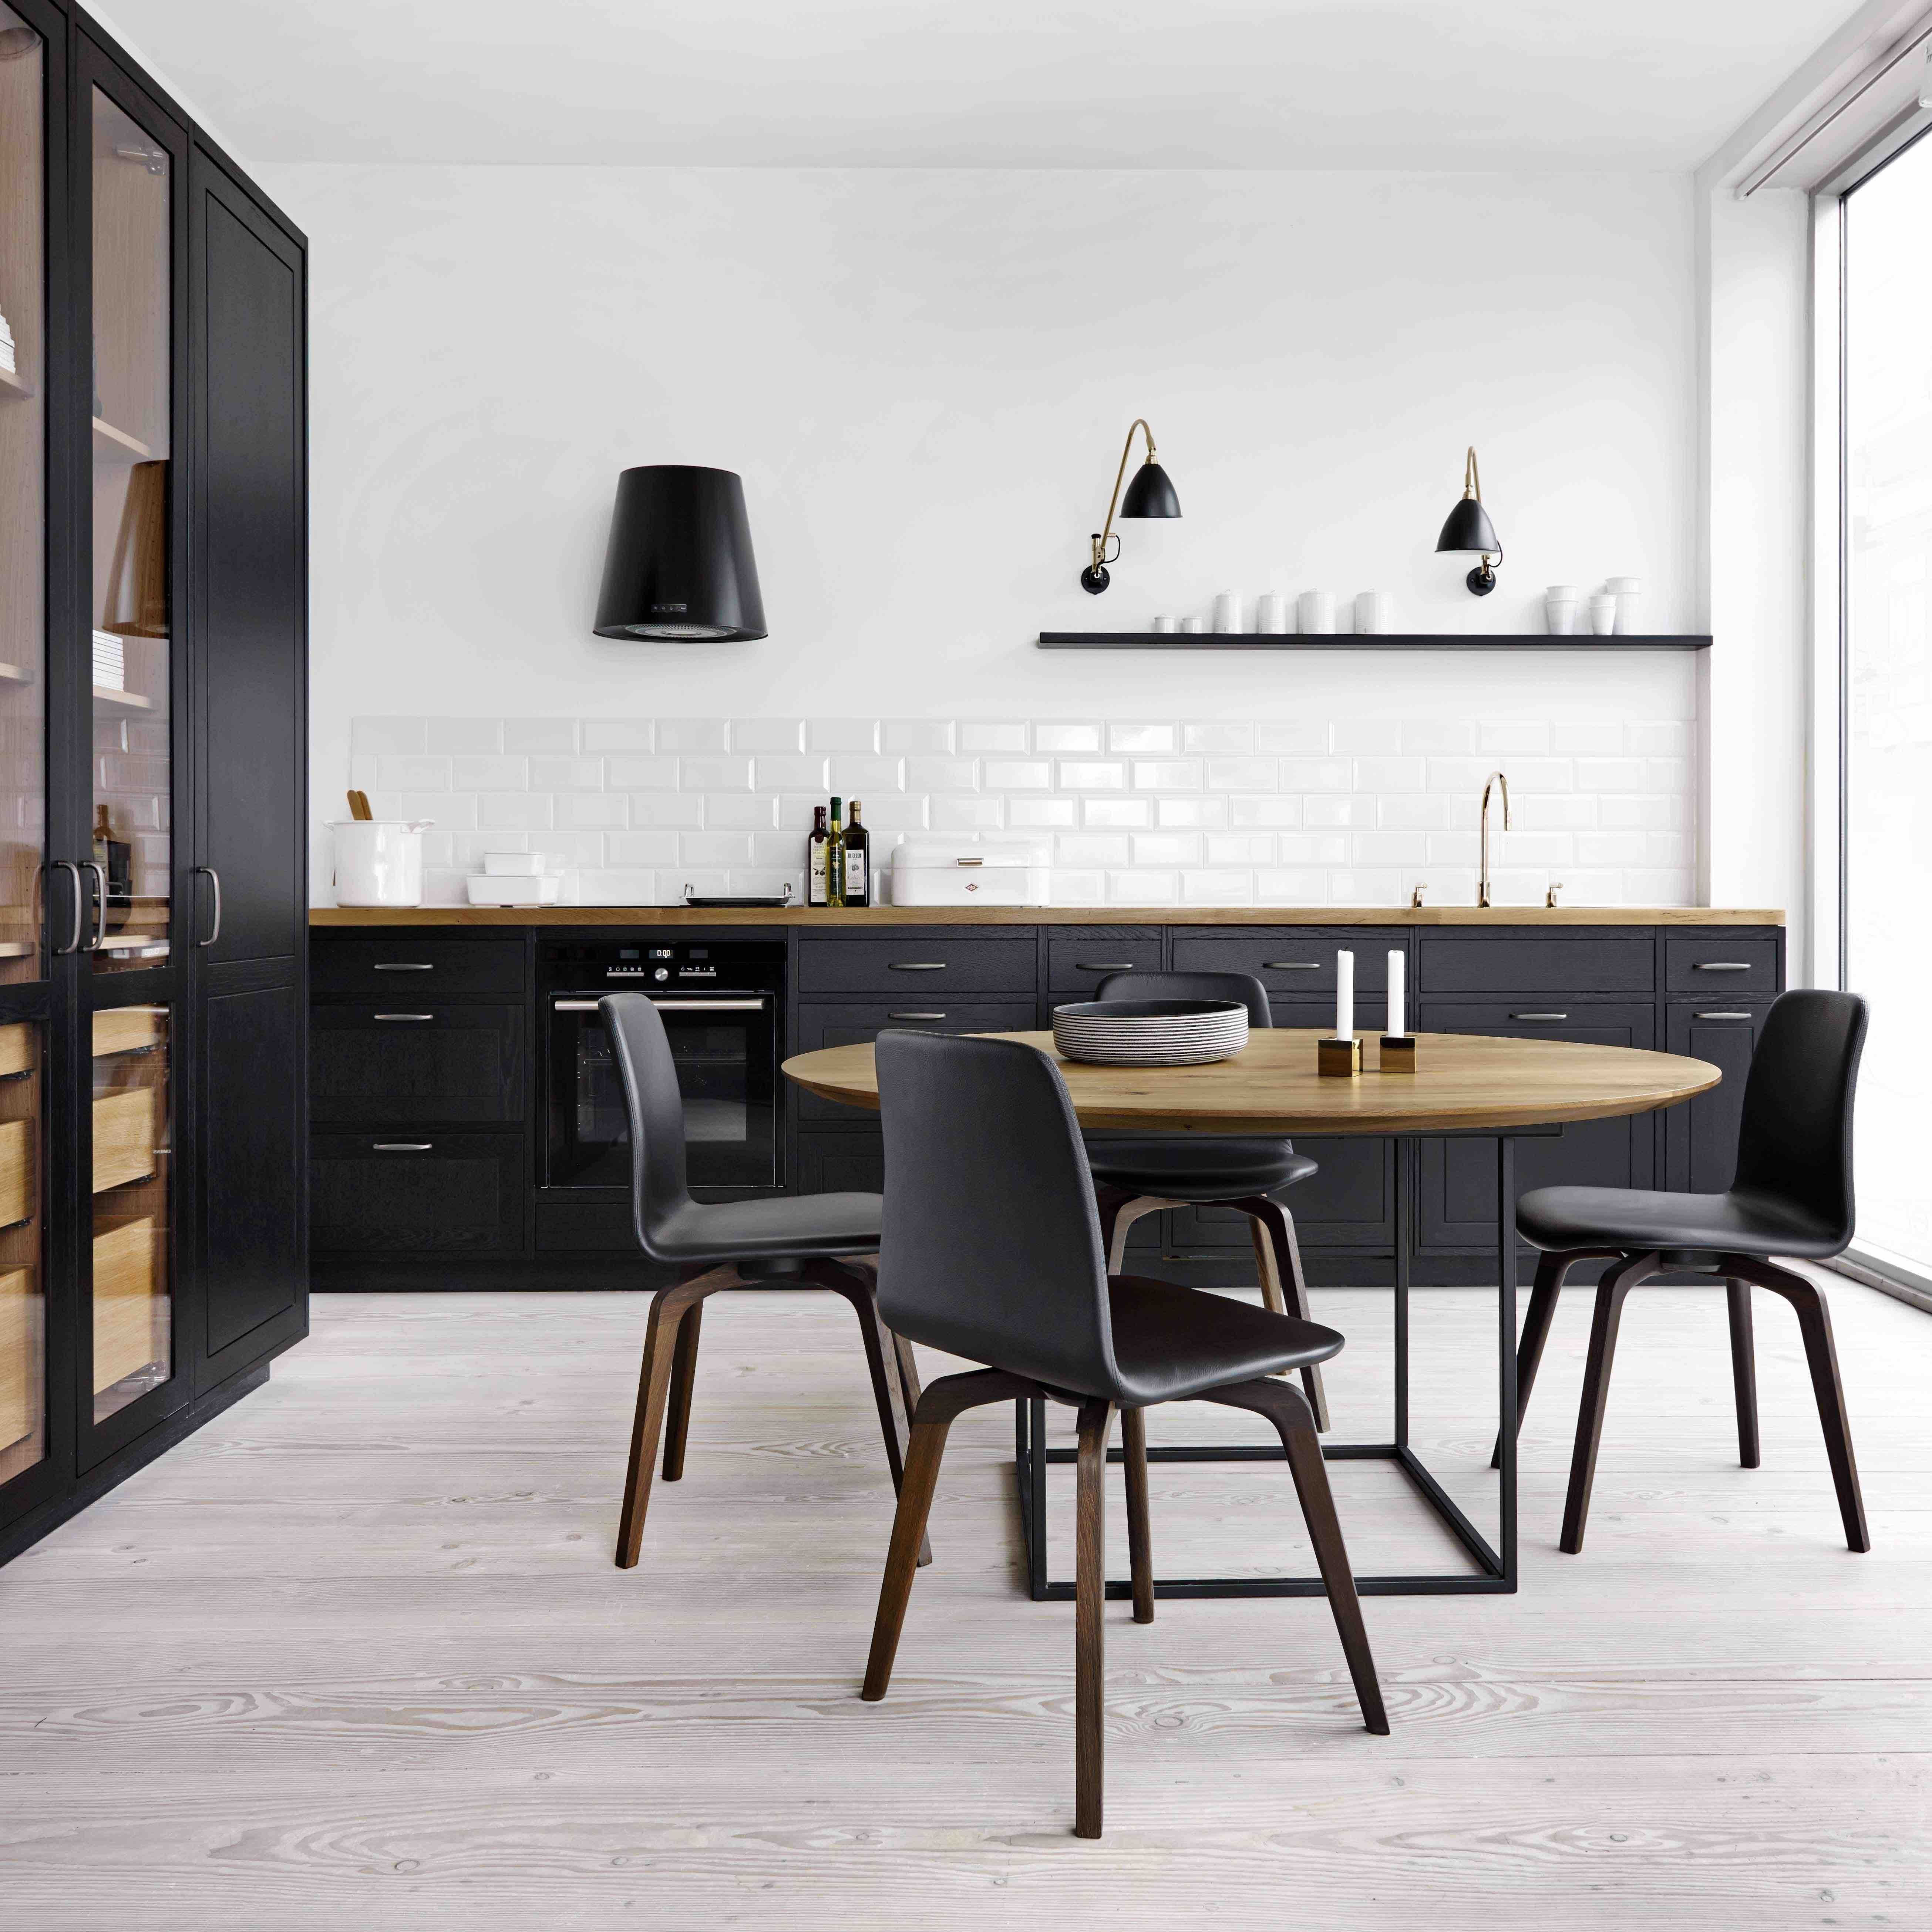 Classic Country Kitchen form 12 // classic country kitchenmultiform | multiform - form